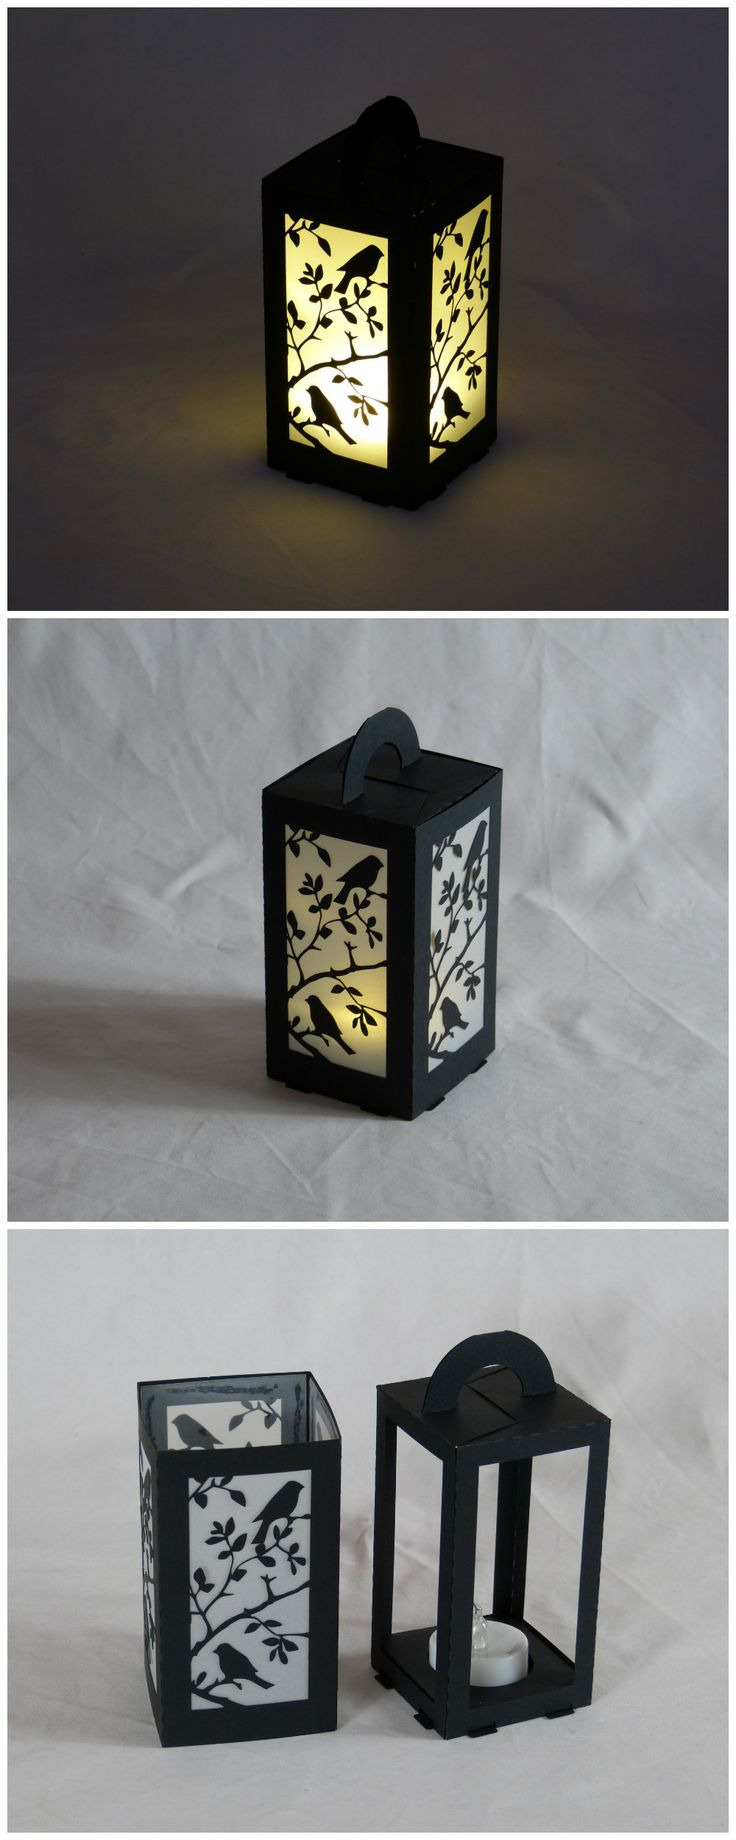 #lasercut paper lantern for LED tea light, 6x6x11cm.